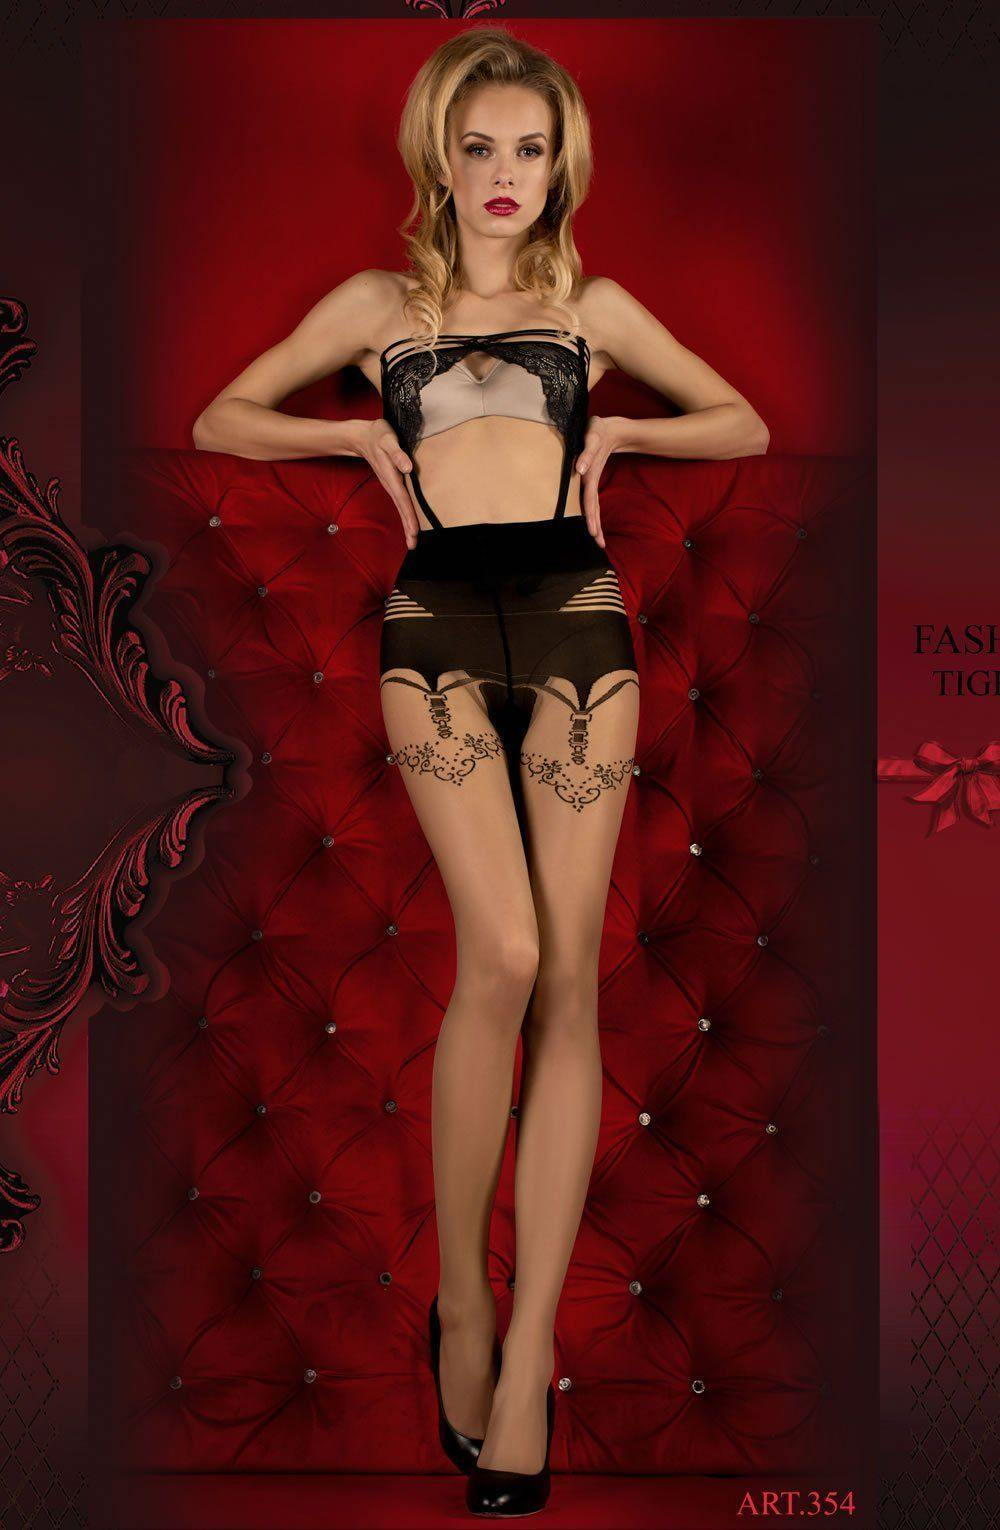 Ballerina 354 Tights Skin Nero (Black)